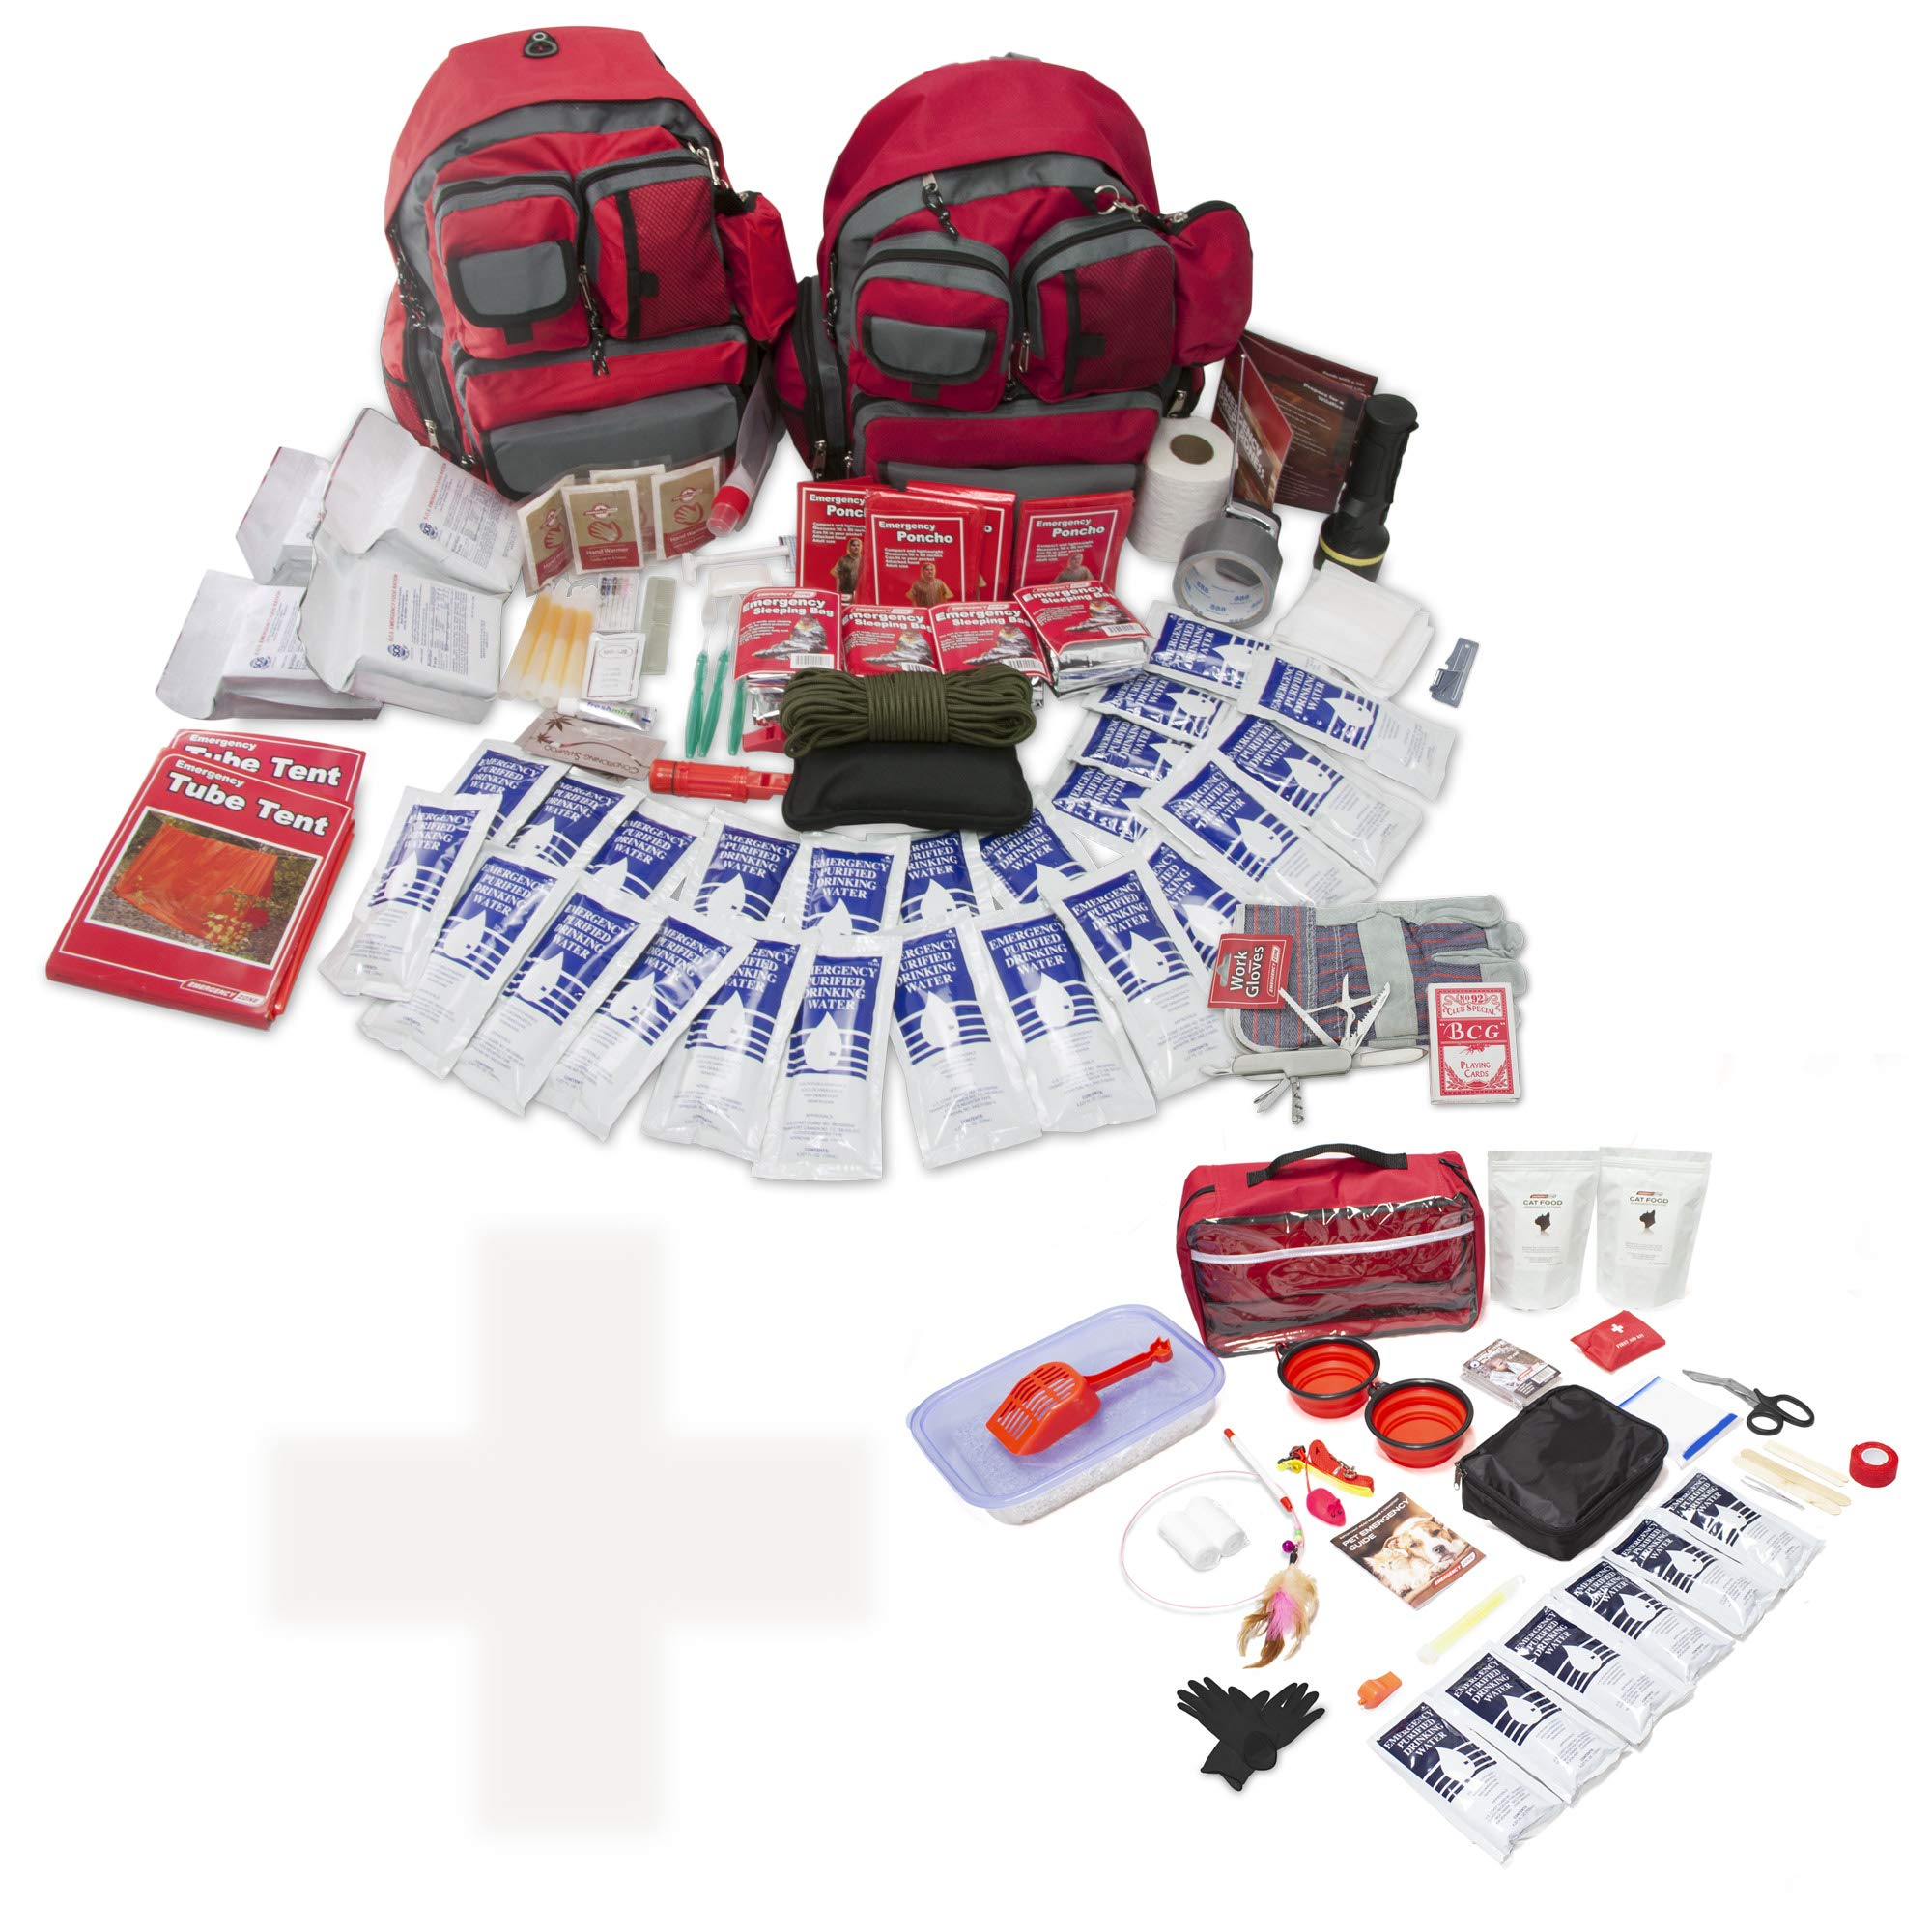 Bundle & Save | Emergency Zone 4 Person Family Prep 72 Hour Survival Kit + Basic Cat Emergency Kit | Perfect Way to Prepare Your Family | Be Ready for Disasters like Hurricanes, Earthquake, Fires